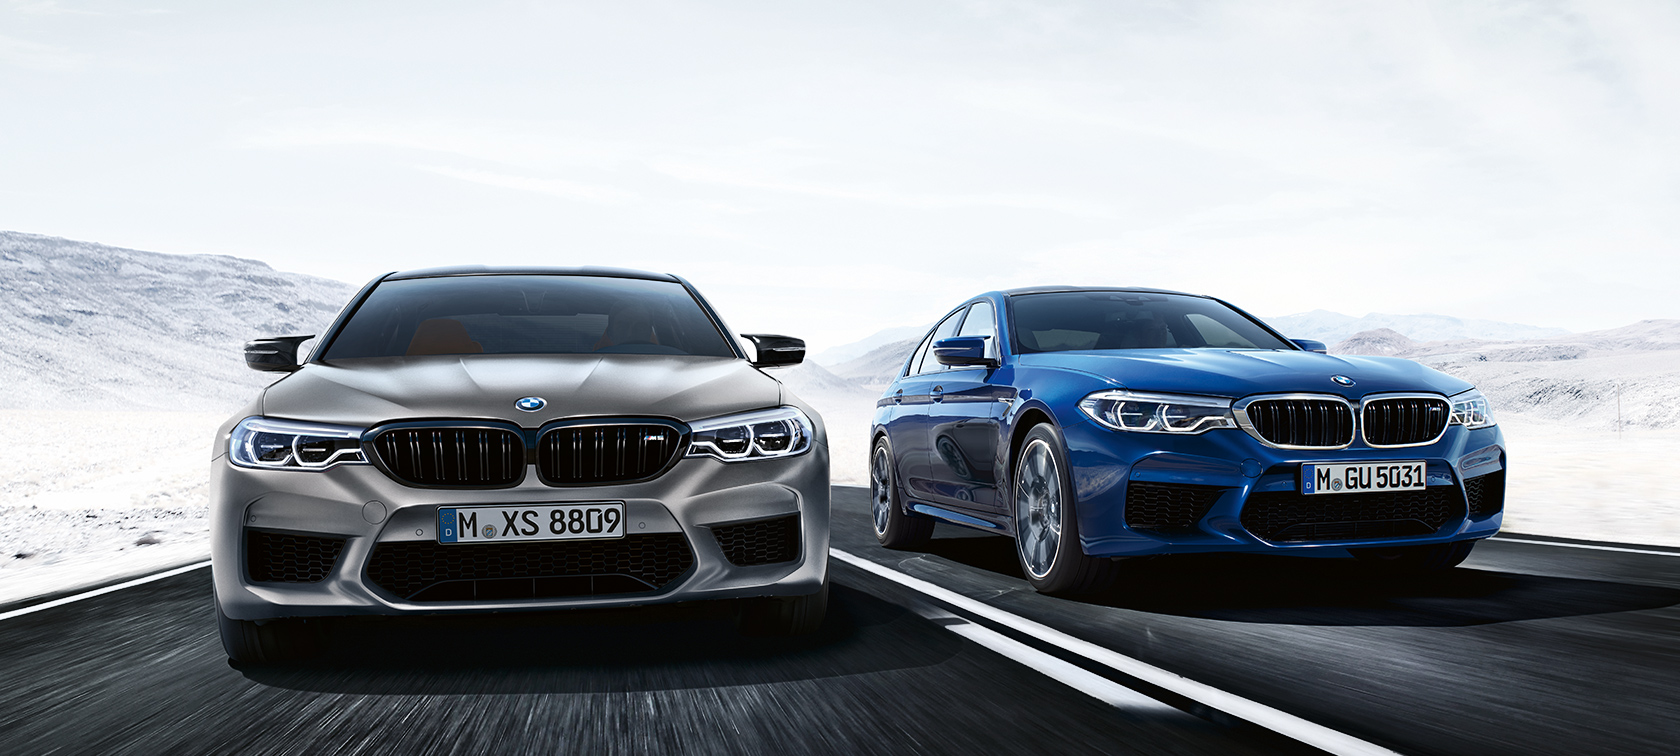 bmw m5 avec m xdrive attrayante et l gante bmw france. Black Bedroom Furniture Sets. Home Design Ideas